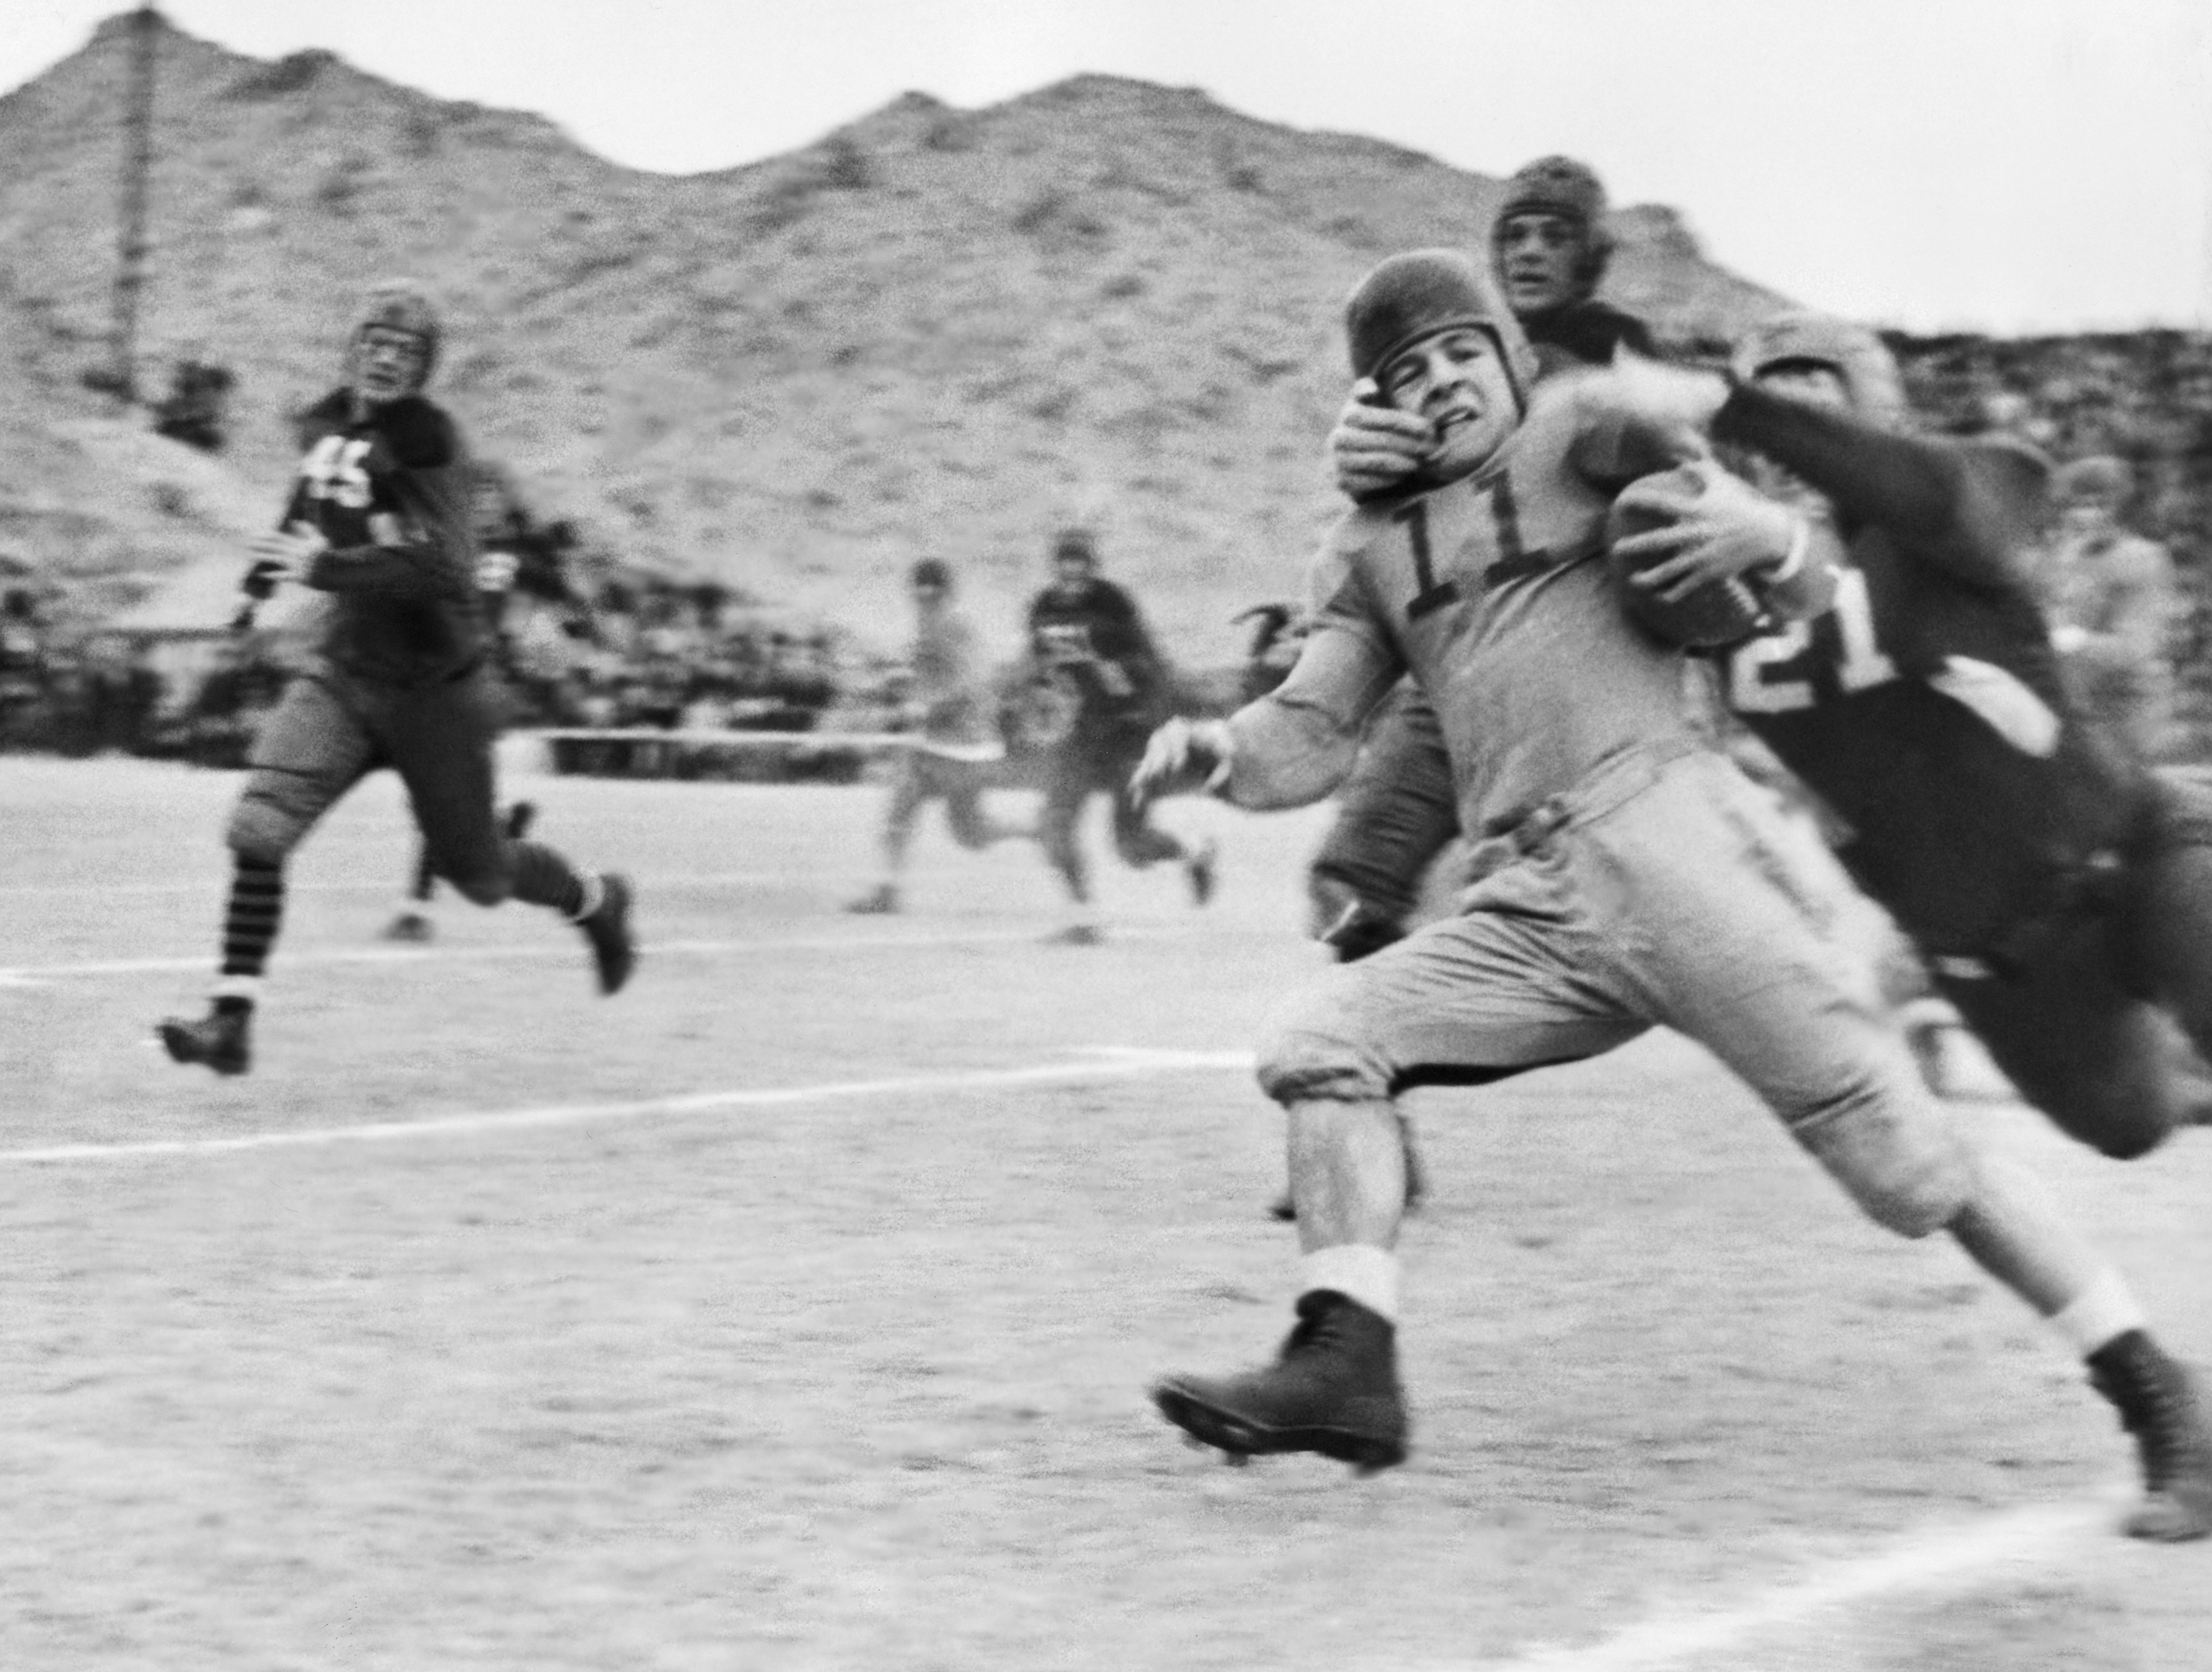 This photo, from the close of the first season of the AP poll, shows Texas Tech's famed Elmer Tarbox, No. 21, at extreme right, giving the well-known neck tie tackle at the Sun Bowl in El Paso, Texas, on Jan. 2, 1937. (AP Photo)